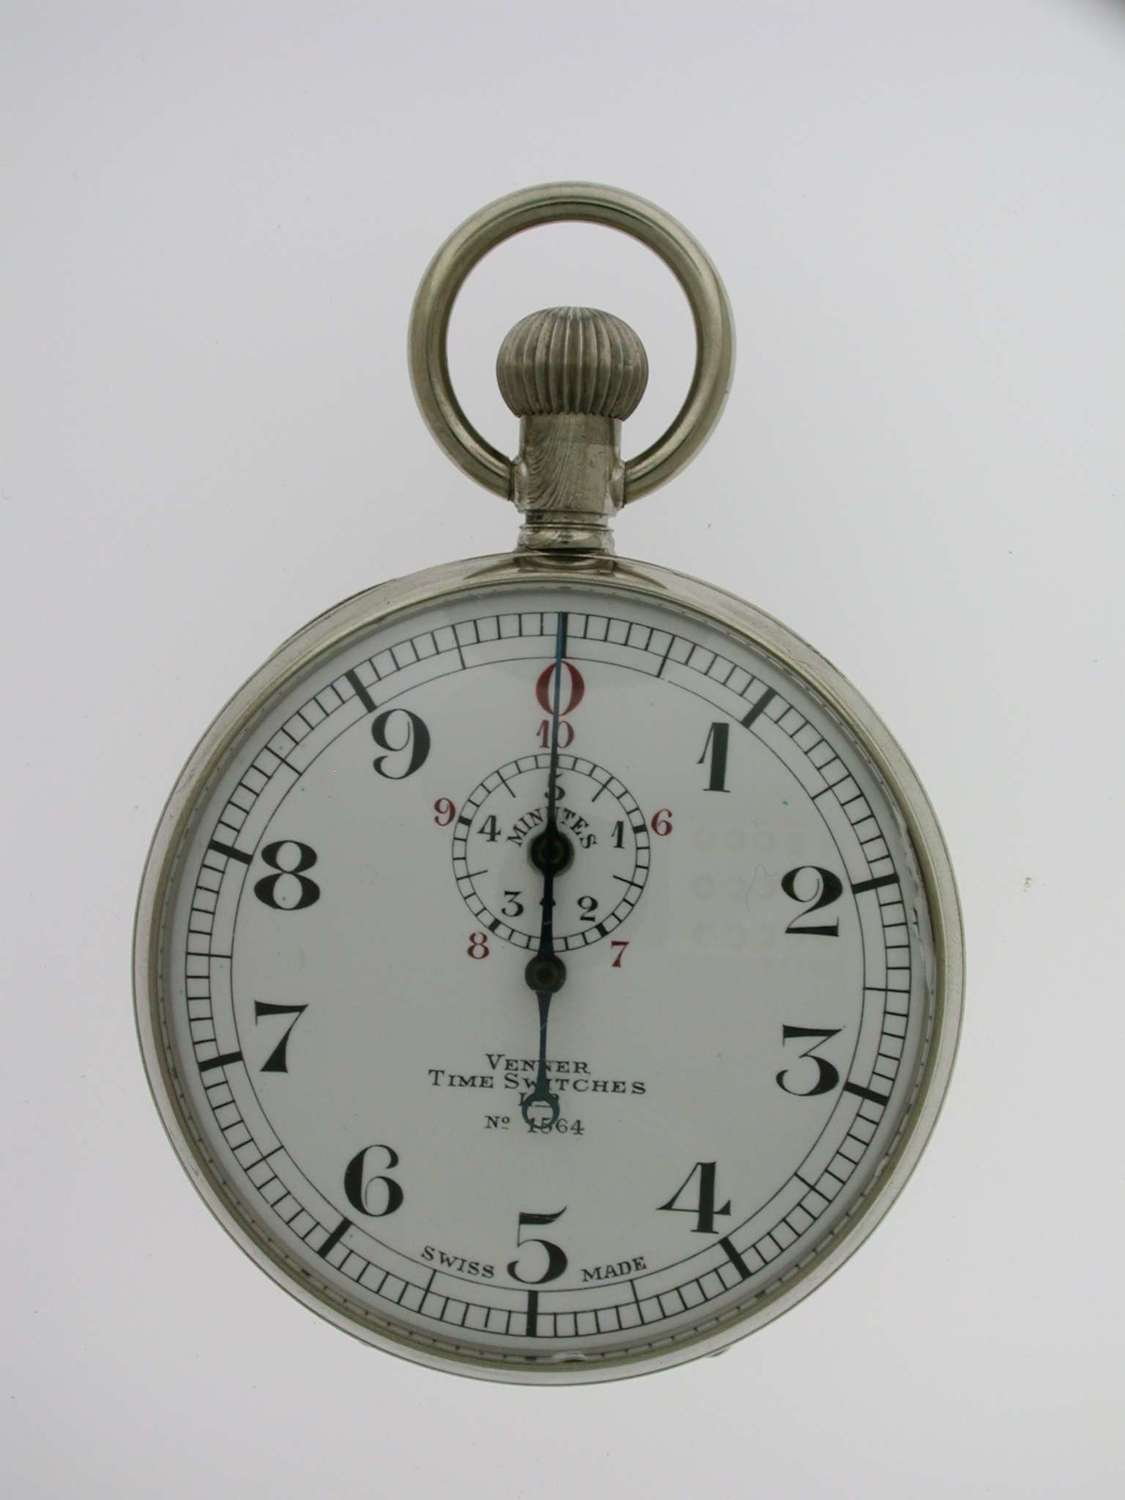 Venner Time Switches Stop Watch Steel Pocket Watch Swiss 1920